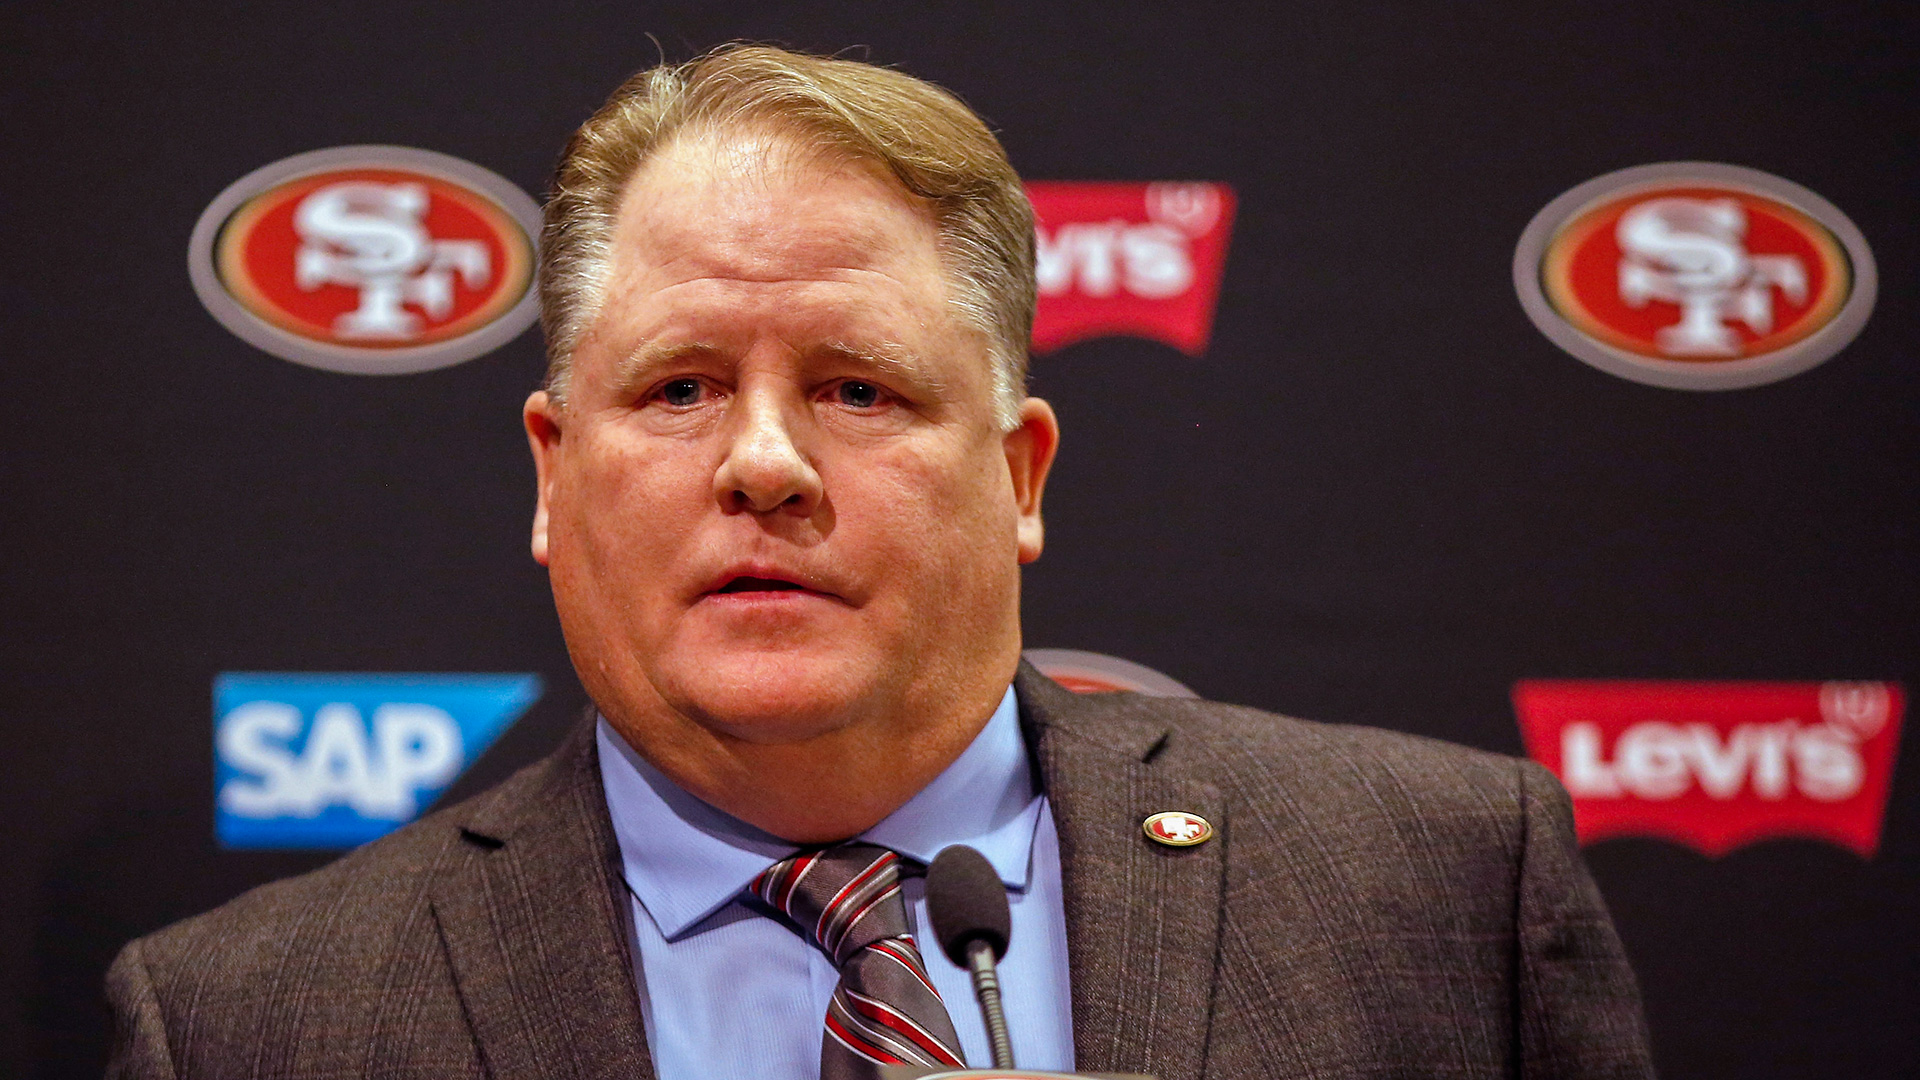 2-chip-kelly-012016-getty-ftrjpg_us7bxciyyil11zbvwdbc6v22